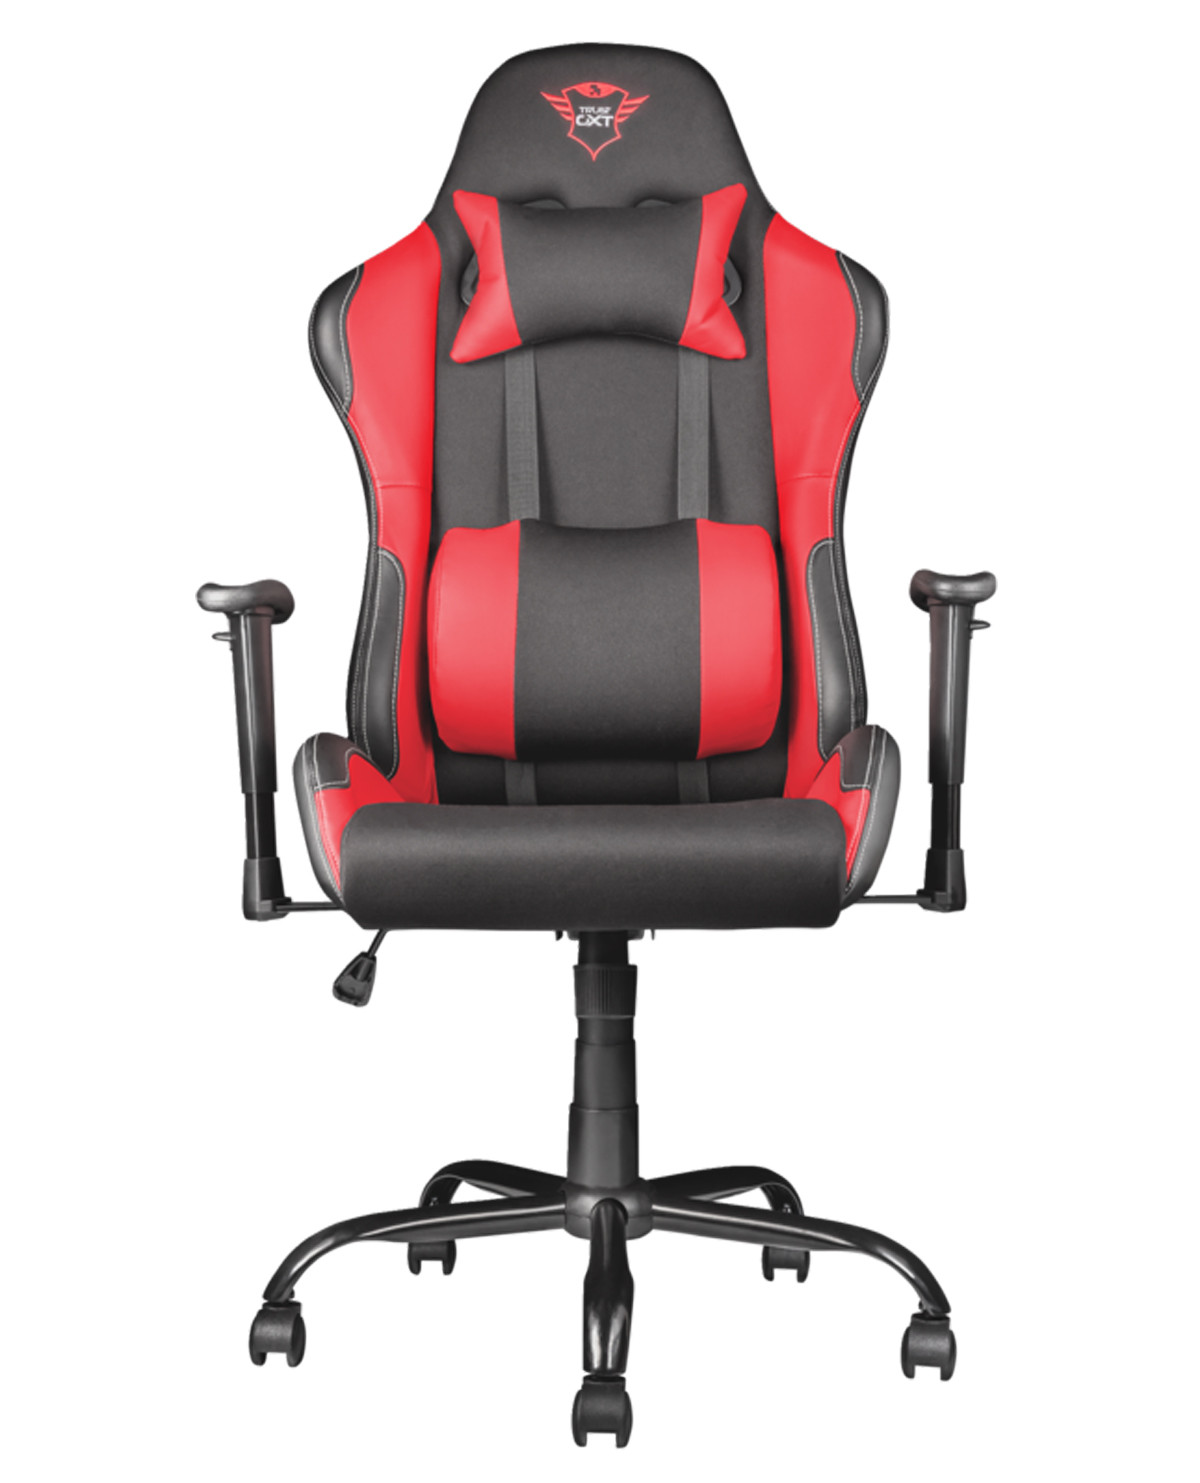 SILLA TRUST GXT 707R RESTO GAMING RED para PCS  GamePlanet